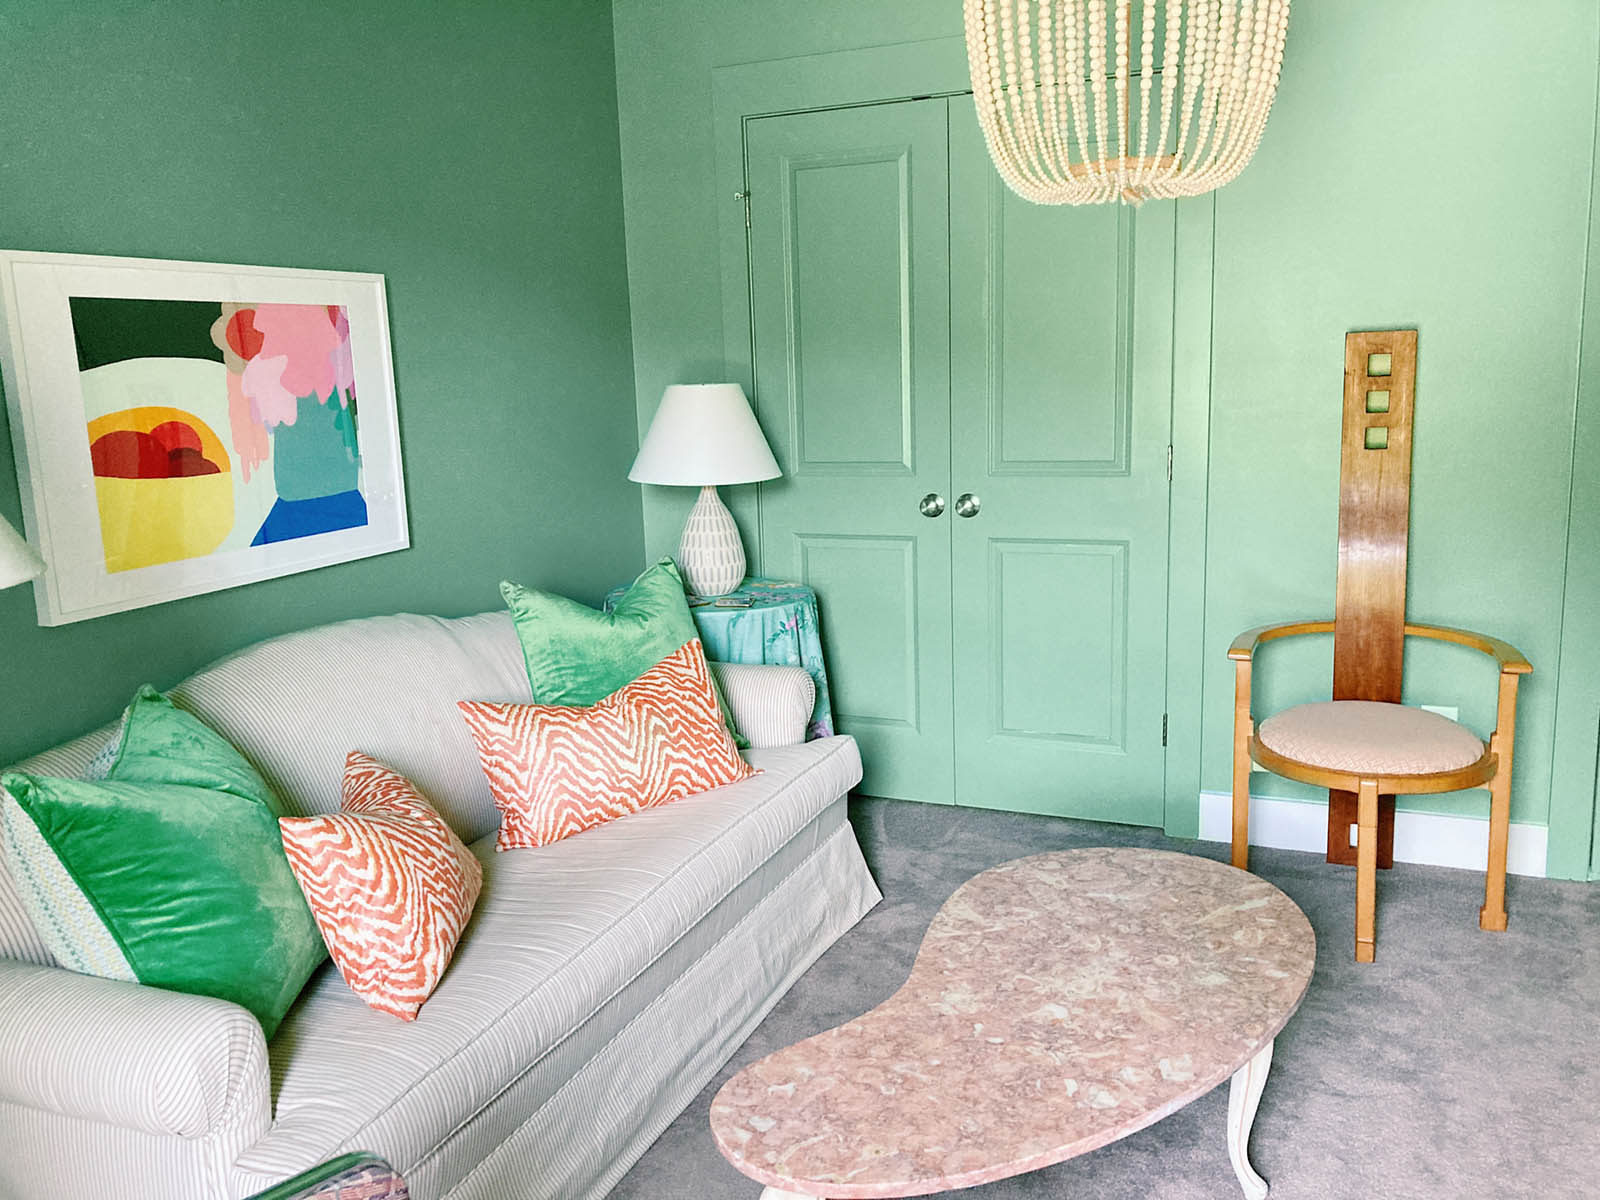 This designer's spare room doubles as a guest bedroom and home office. See how she maximized the space with inspiring ideas for a guest bedroom.